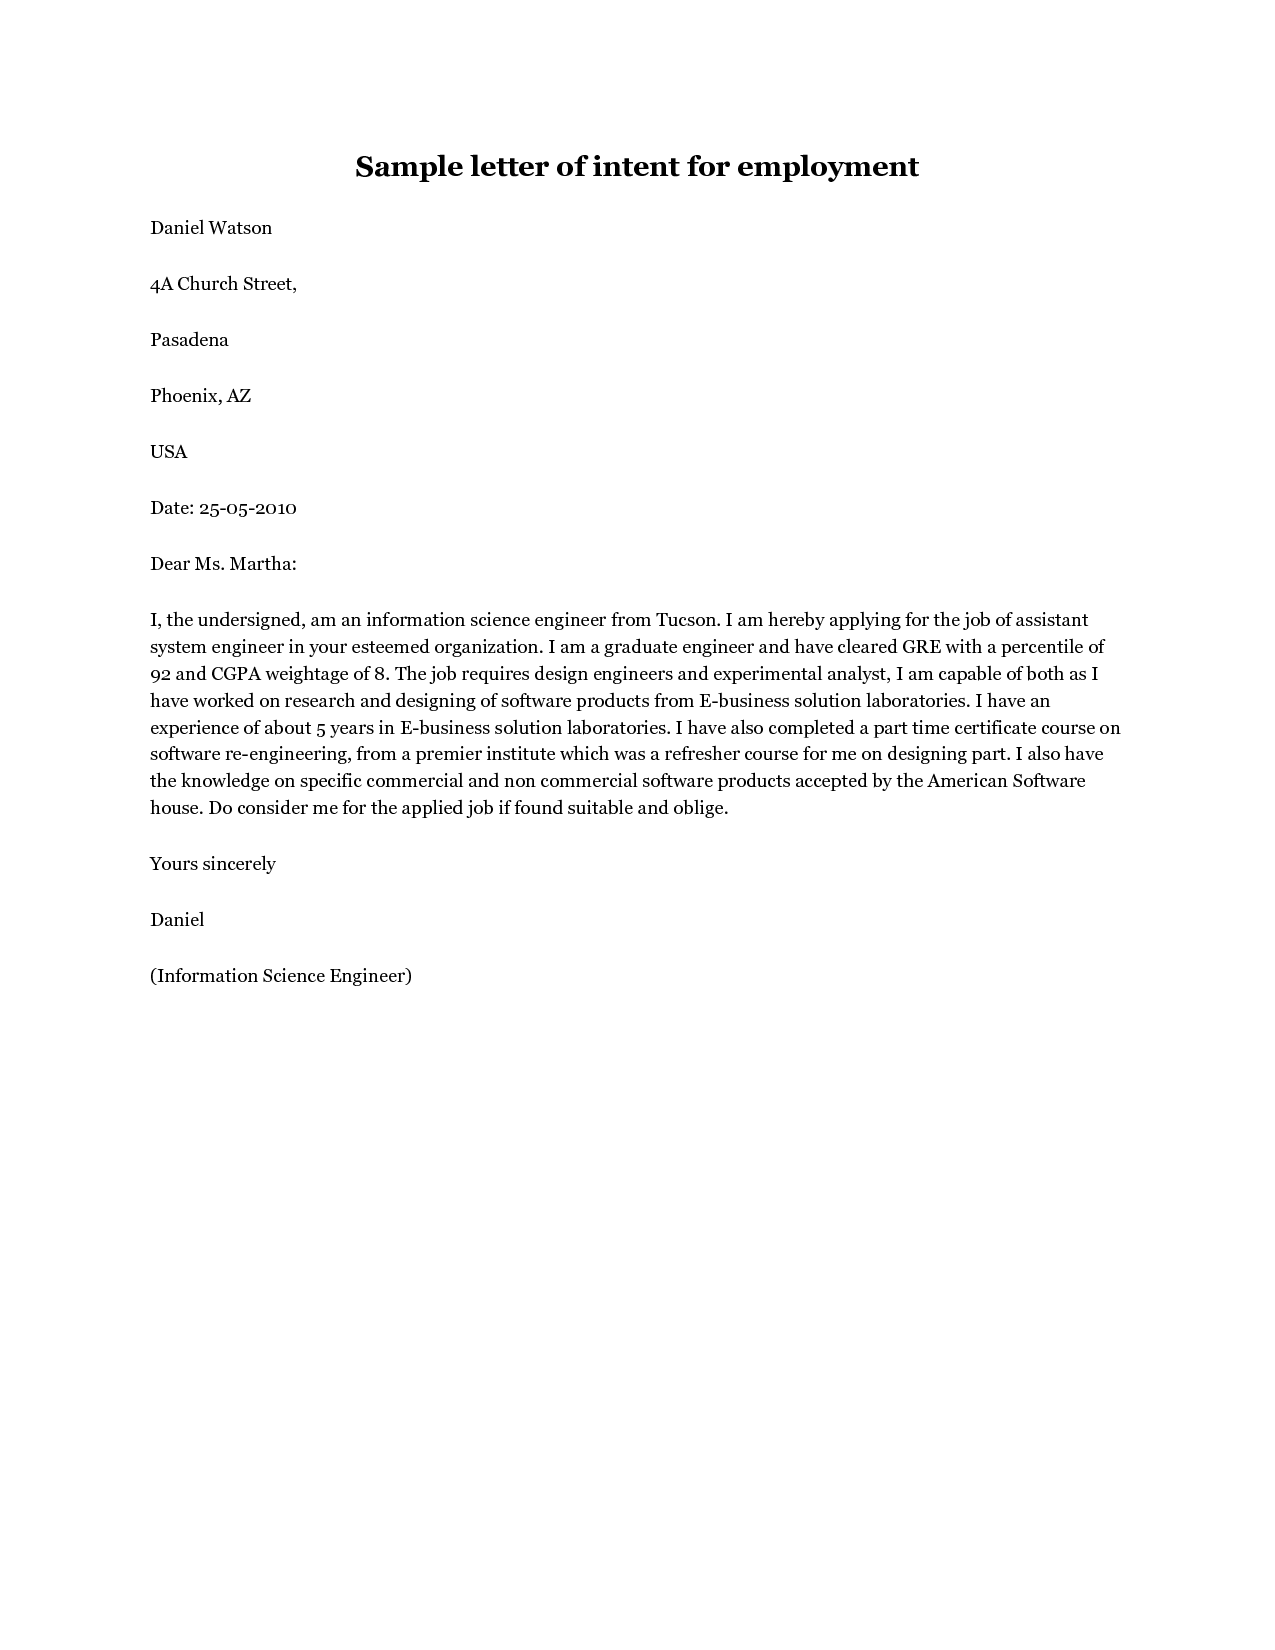 Sample letter of intent job application sample letter of for Letter of intent to hire template